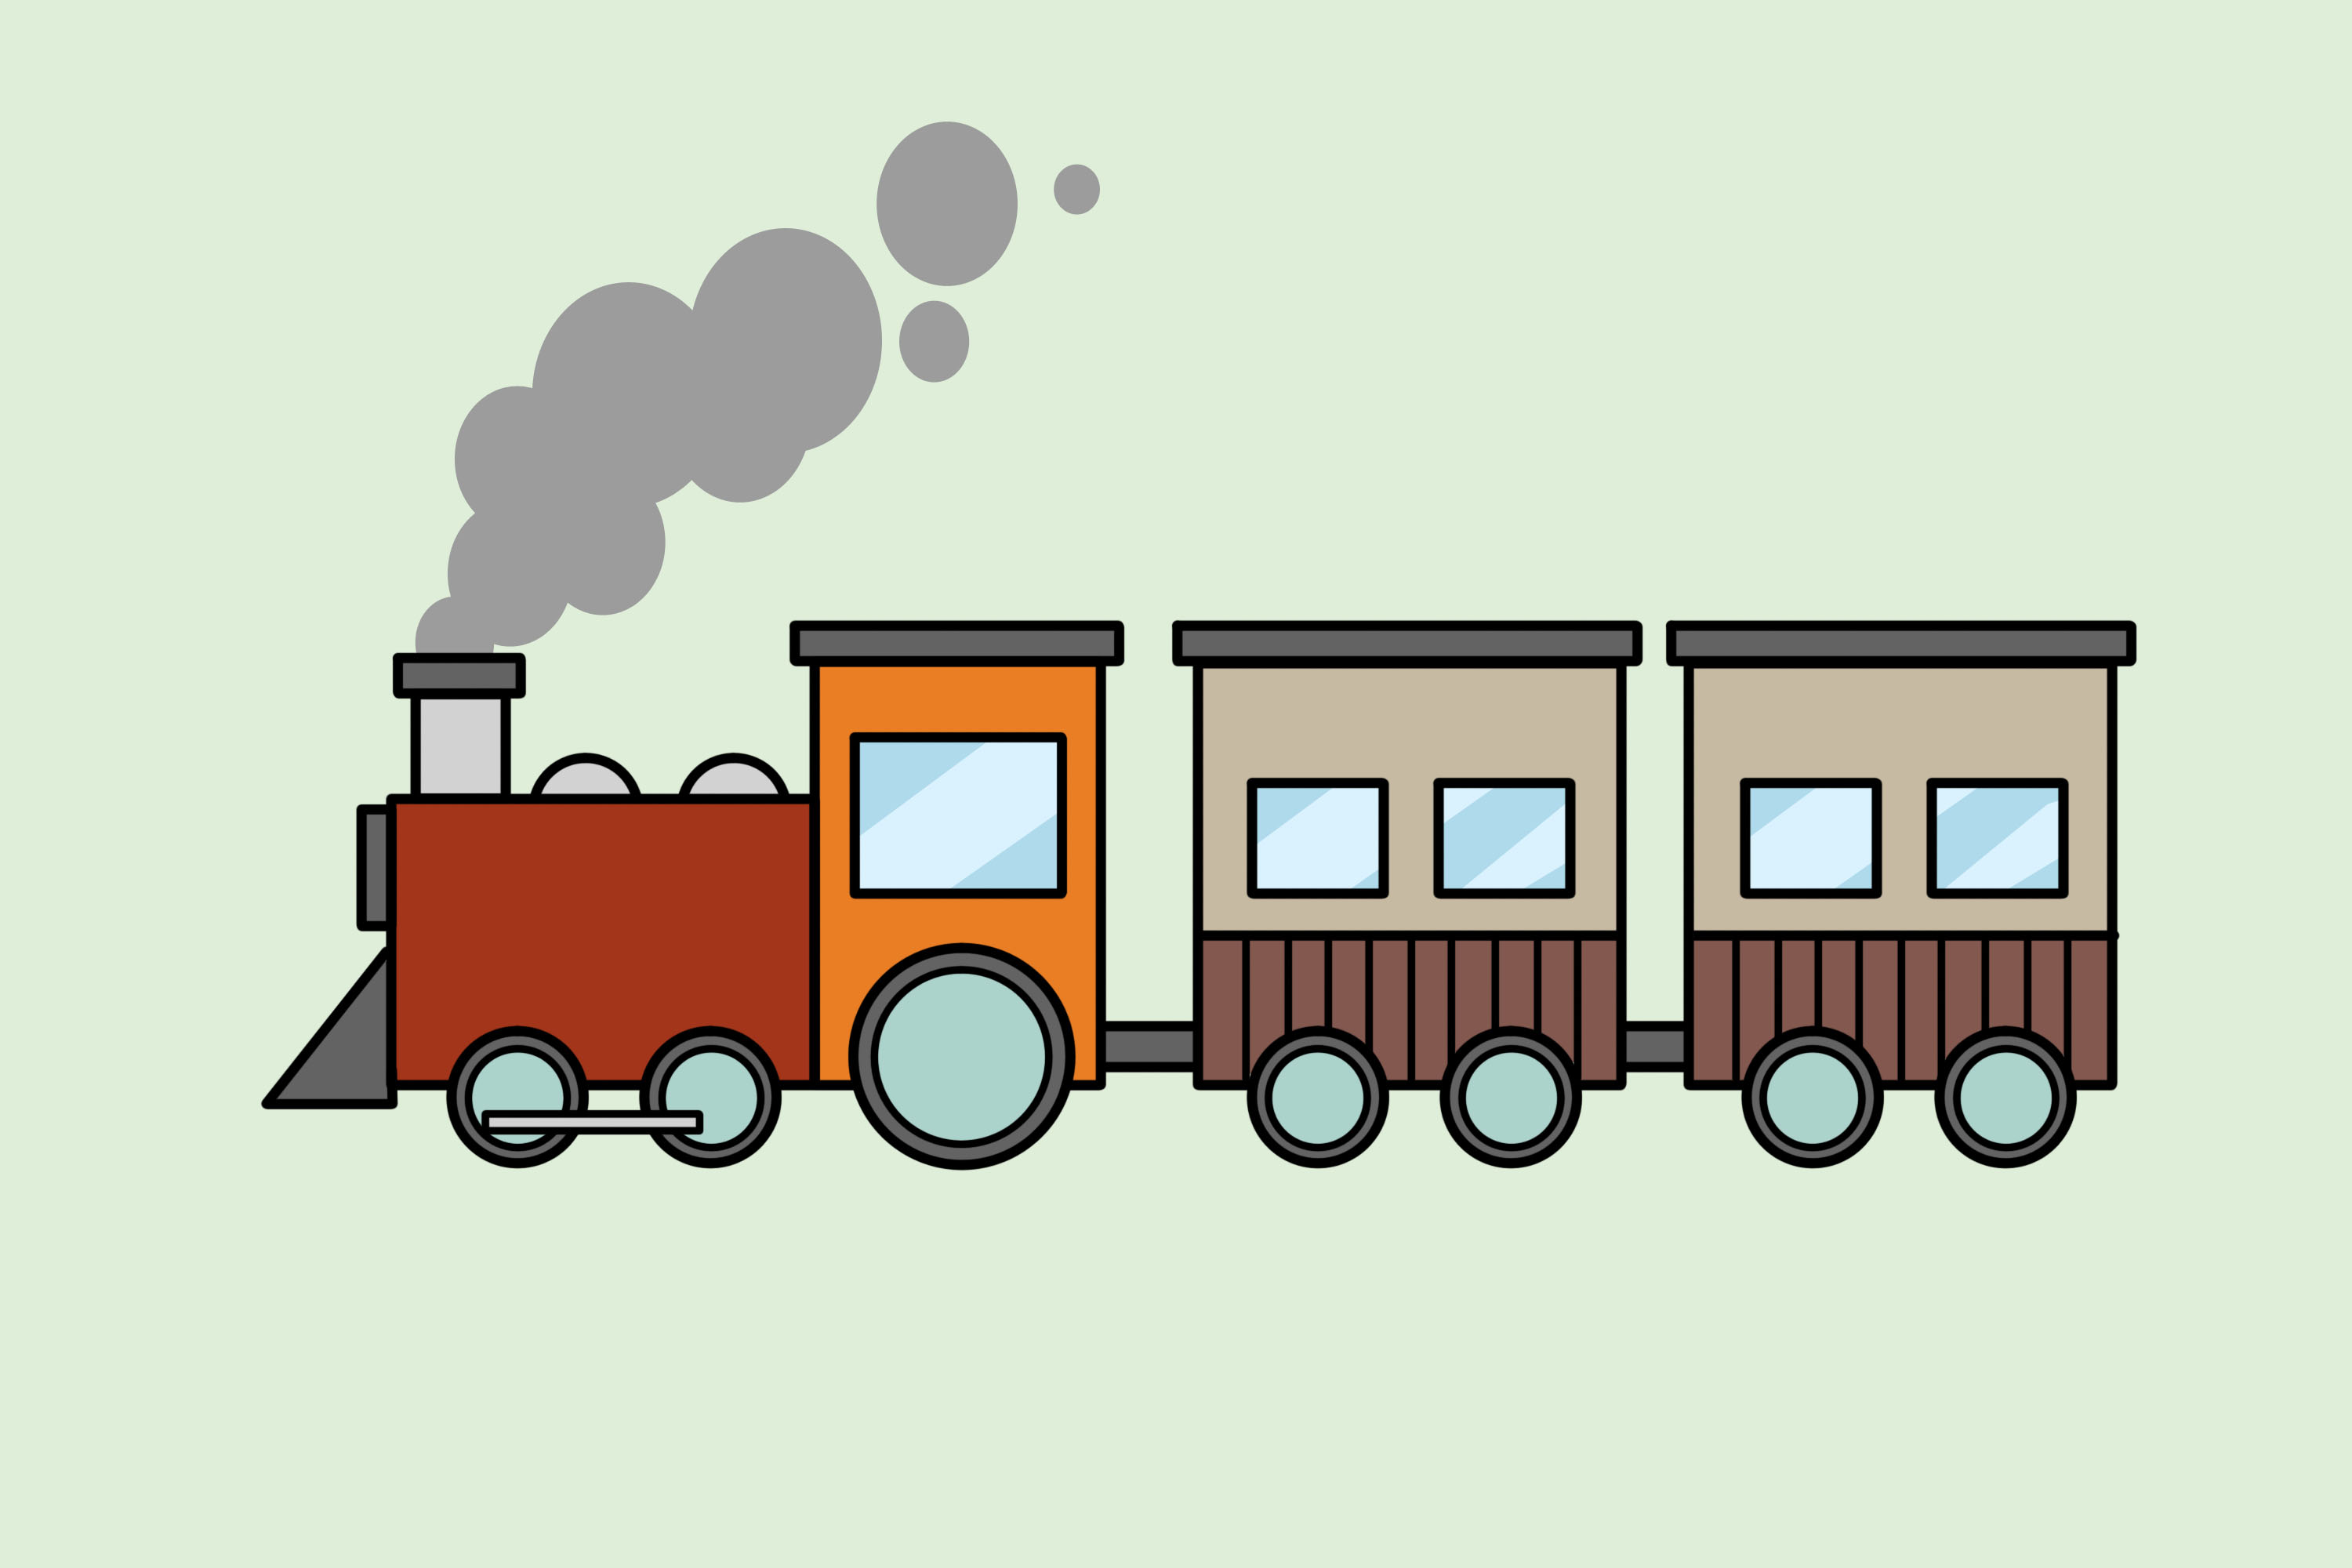 Drawn railroad WikiHow  4 Ways to